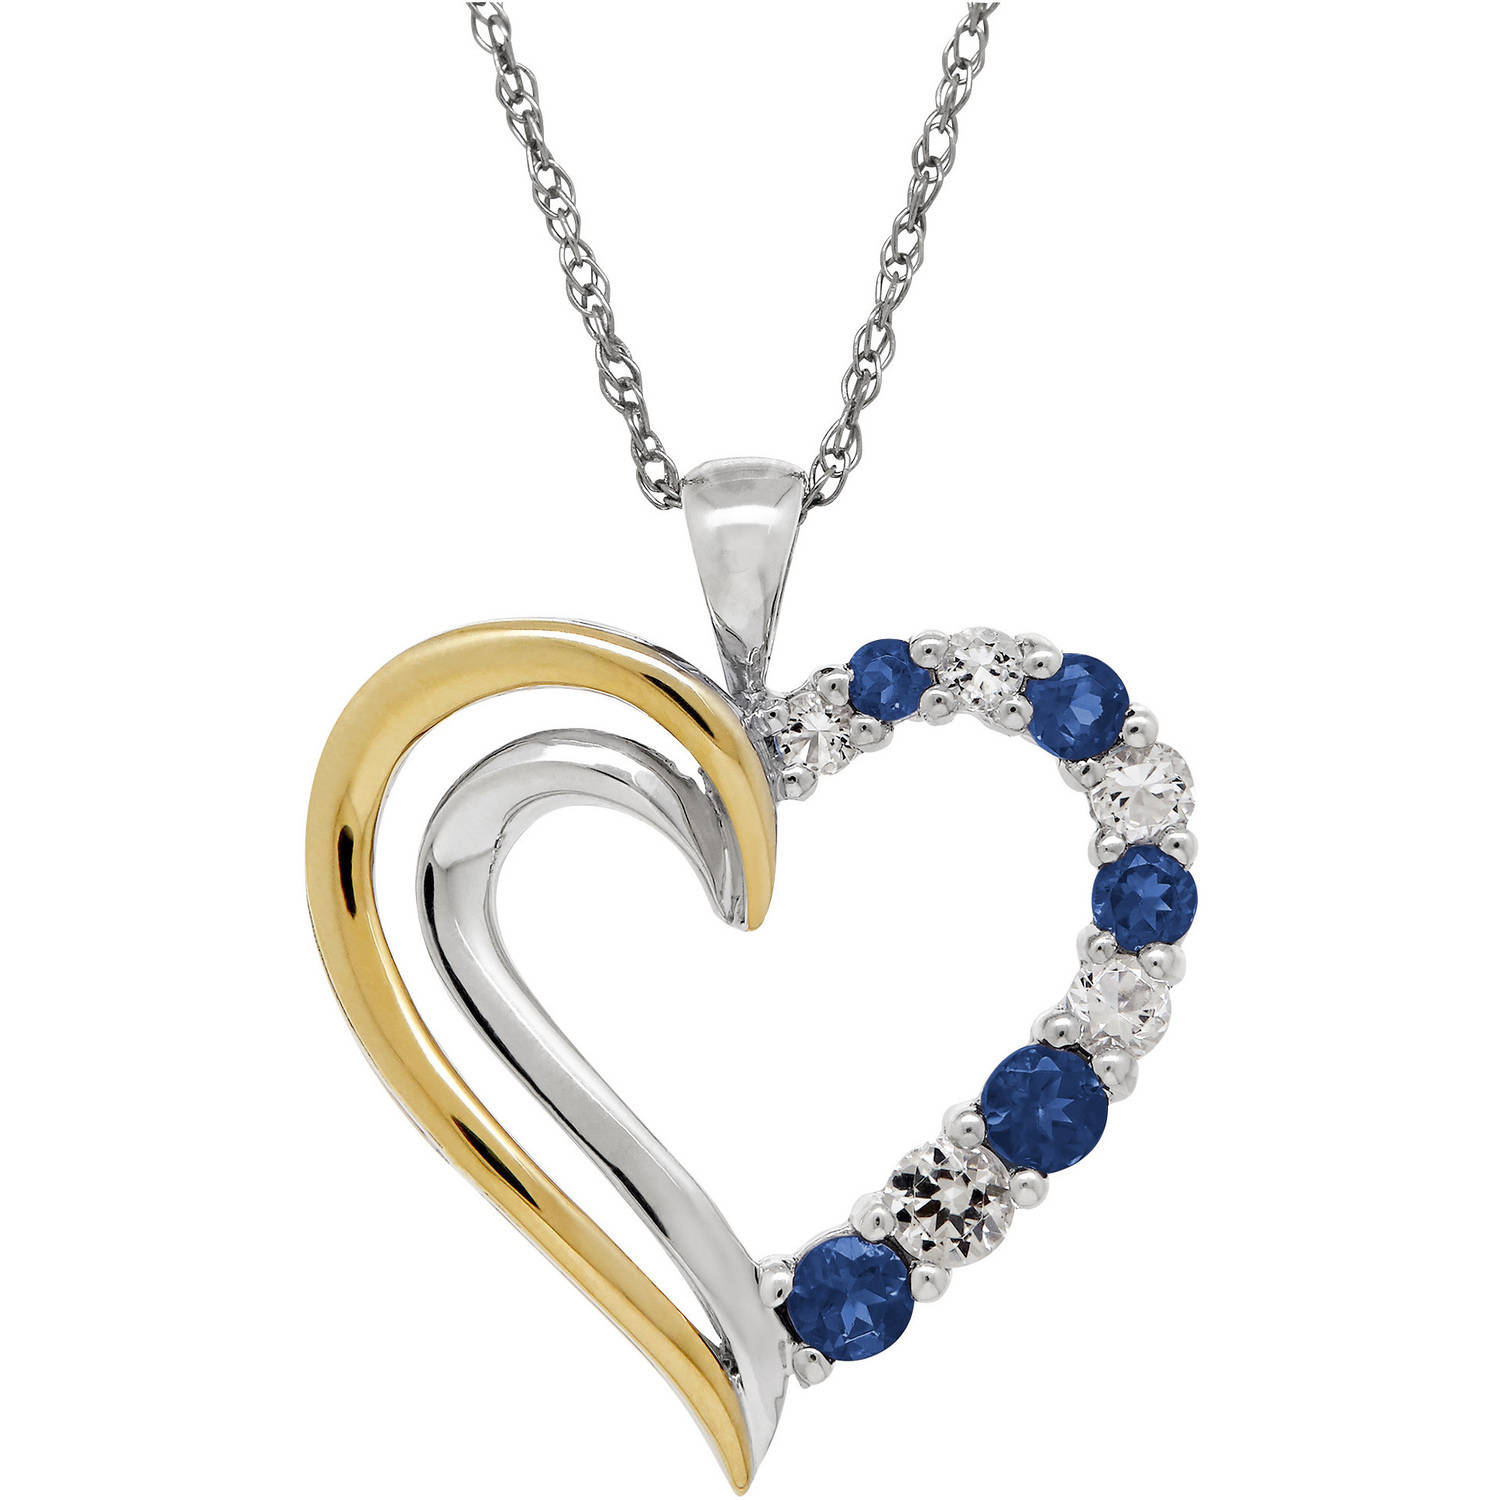 Duet Created Blue Sapphire with White Topaz Sterling Silver and 10kt Yellow Gold Open Heart Pendant, 18""